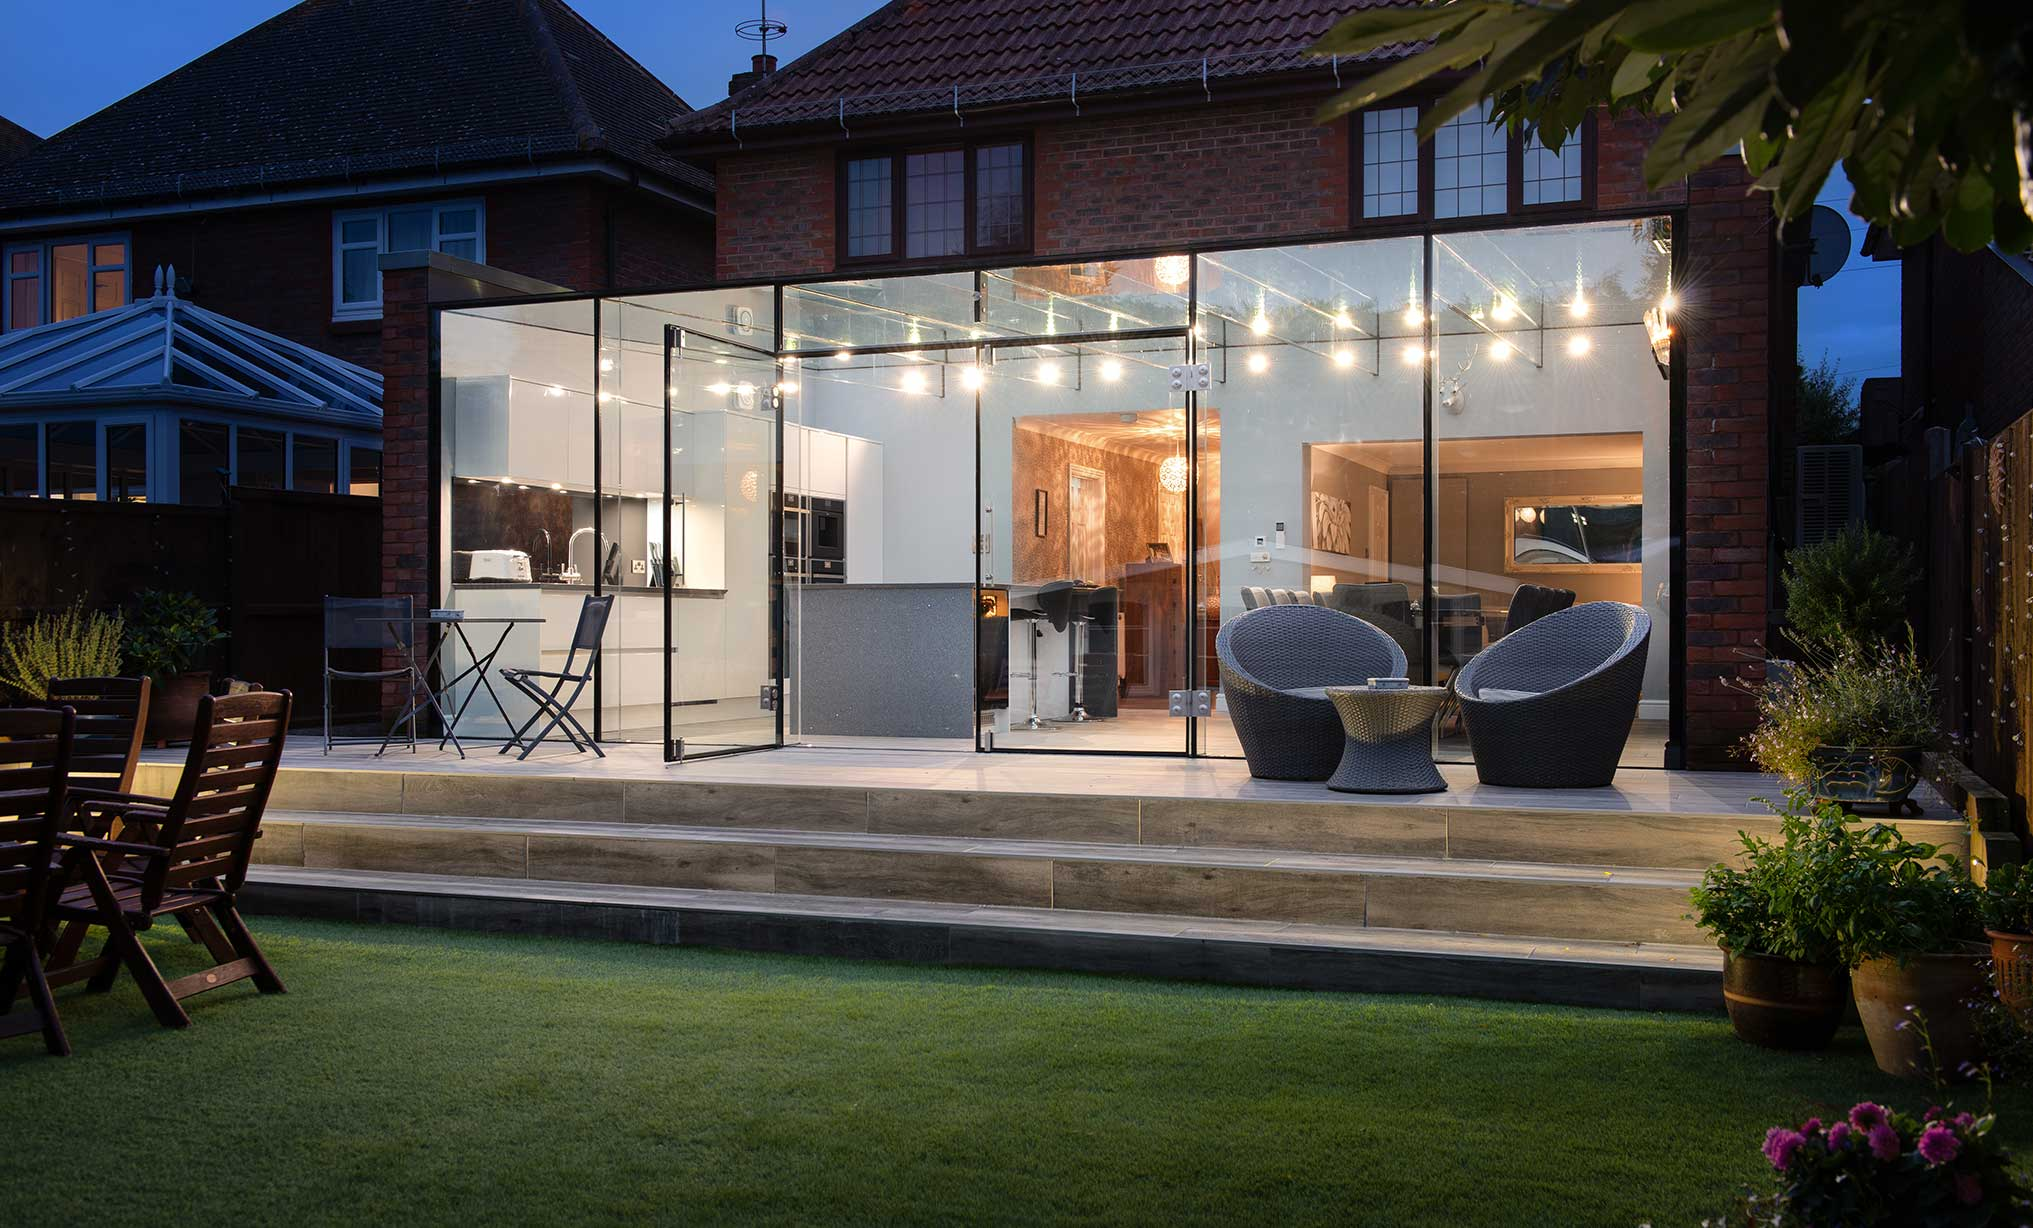 Blink Architecture - Home extension at night